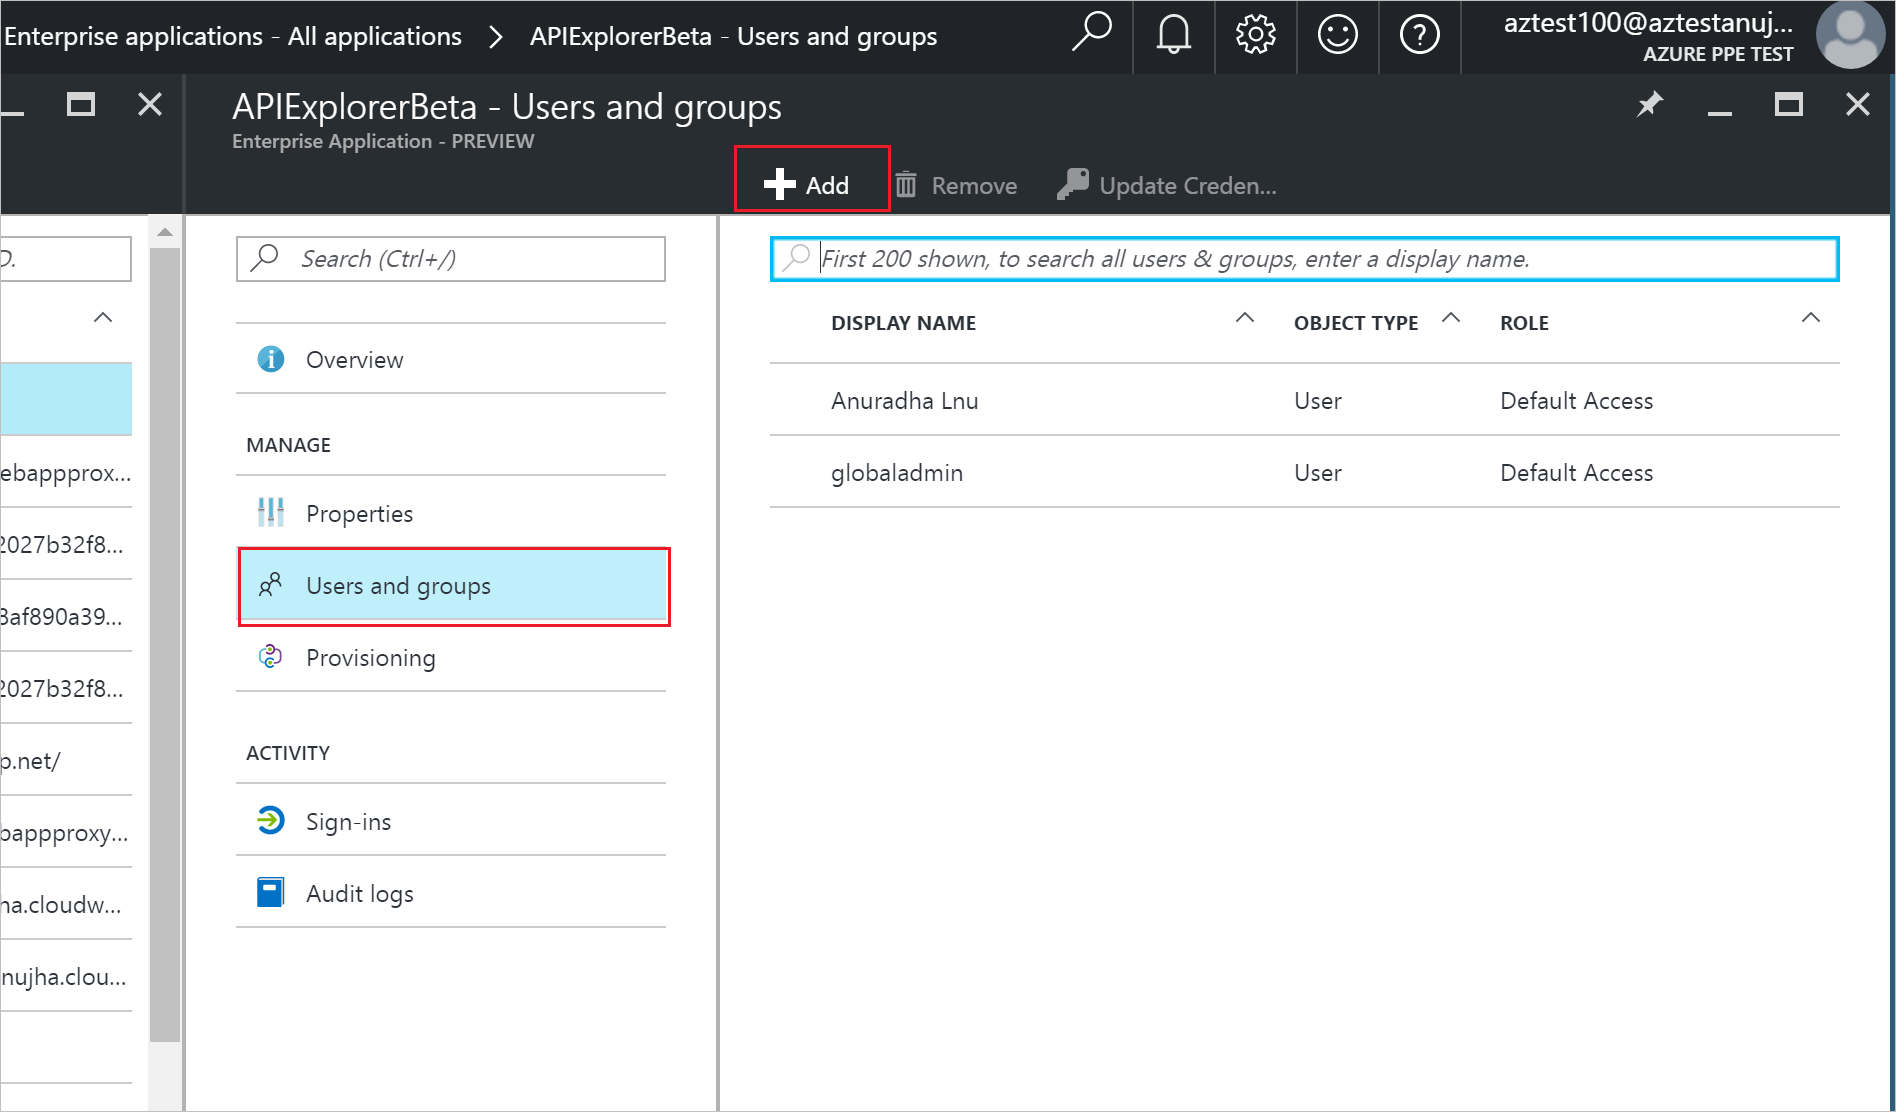 How to add a user in azure - Selecting The All Applications Command